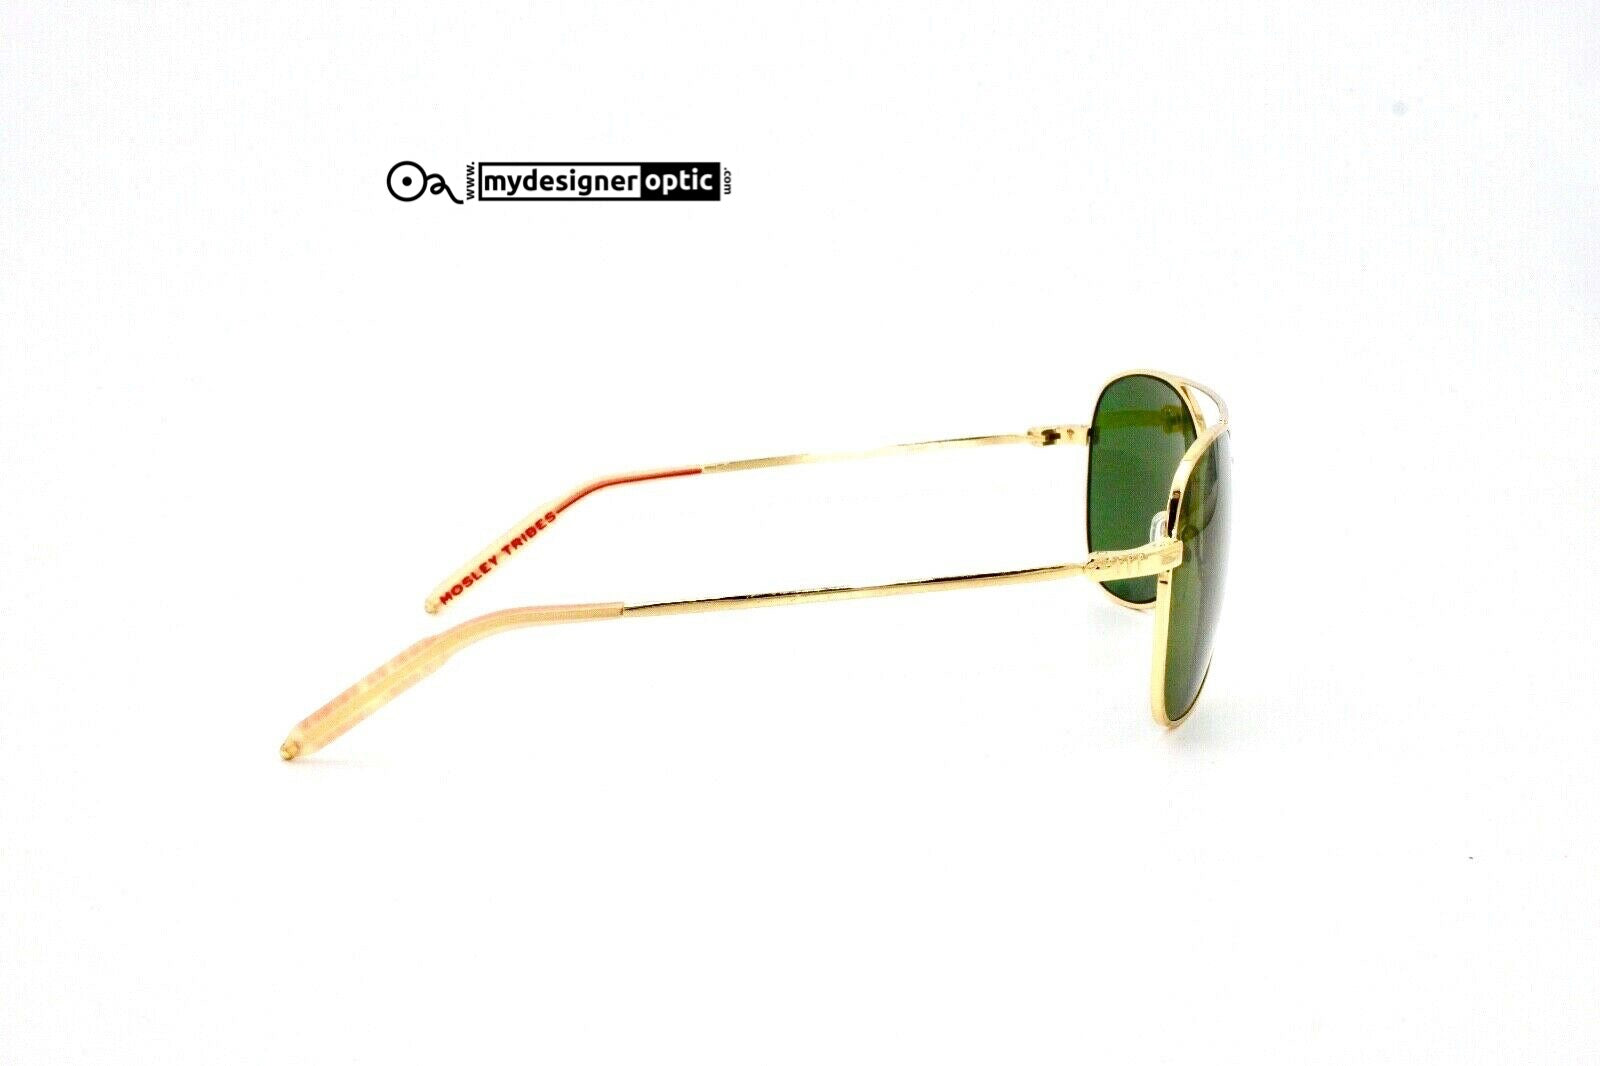 Mosley Tribes Sunglasses Javelin G Photochromic Lenses (Real Dead Stock) - Mydesigneroptic